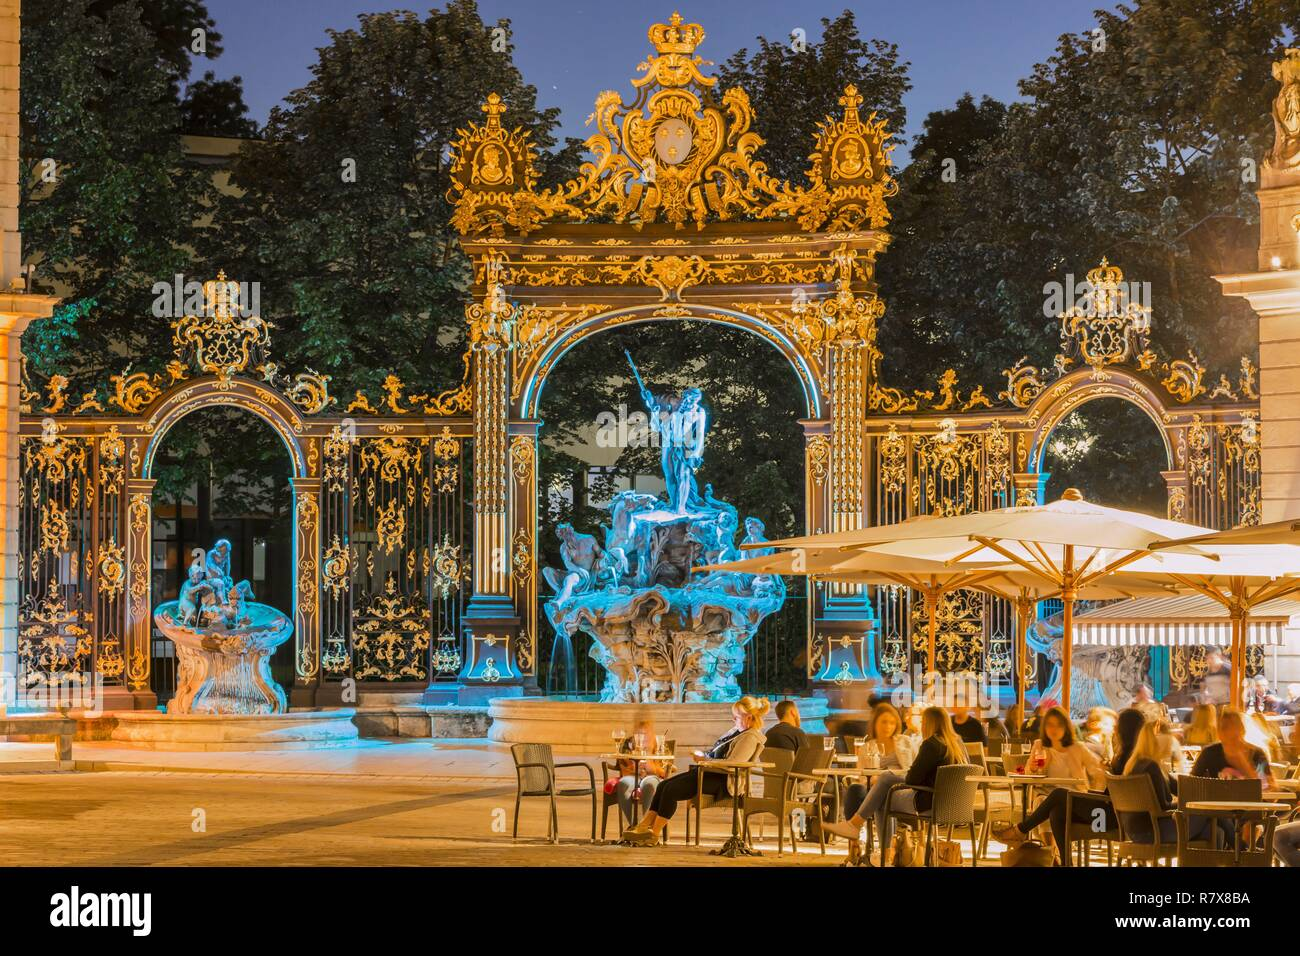 France, Meurthe et Moselle, Nancy, Place Stanislas or former Royal Place listed as World Heritage by UNESCO built by Stanislas Leszczynski king of Poland and last Duke of Lorraine in the 18th century, the fountain of Neptune - Stock Image